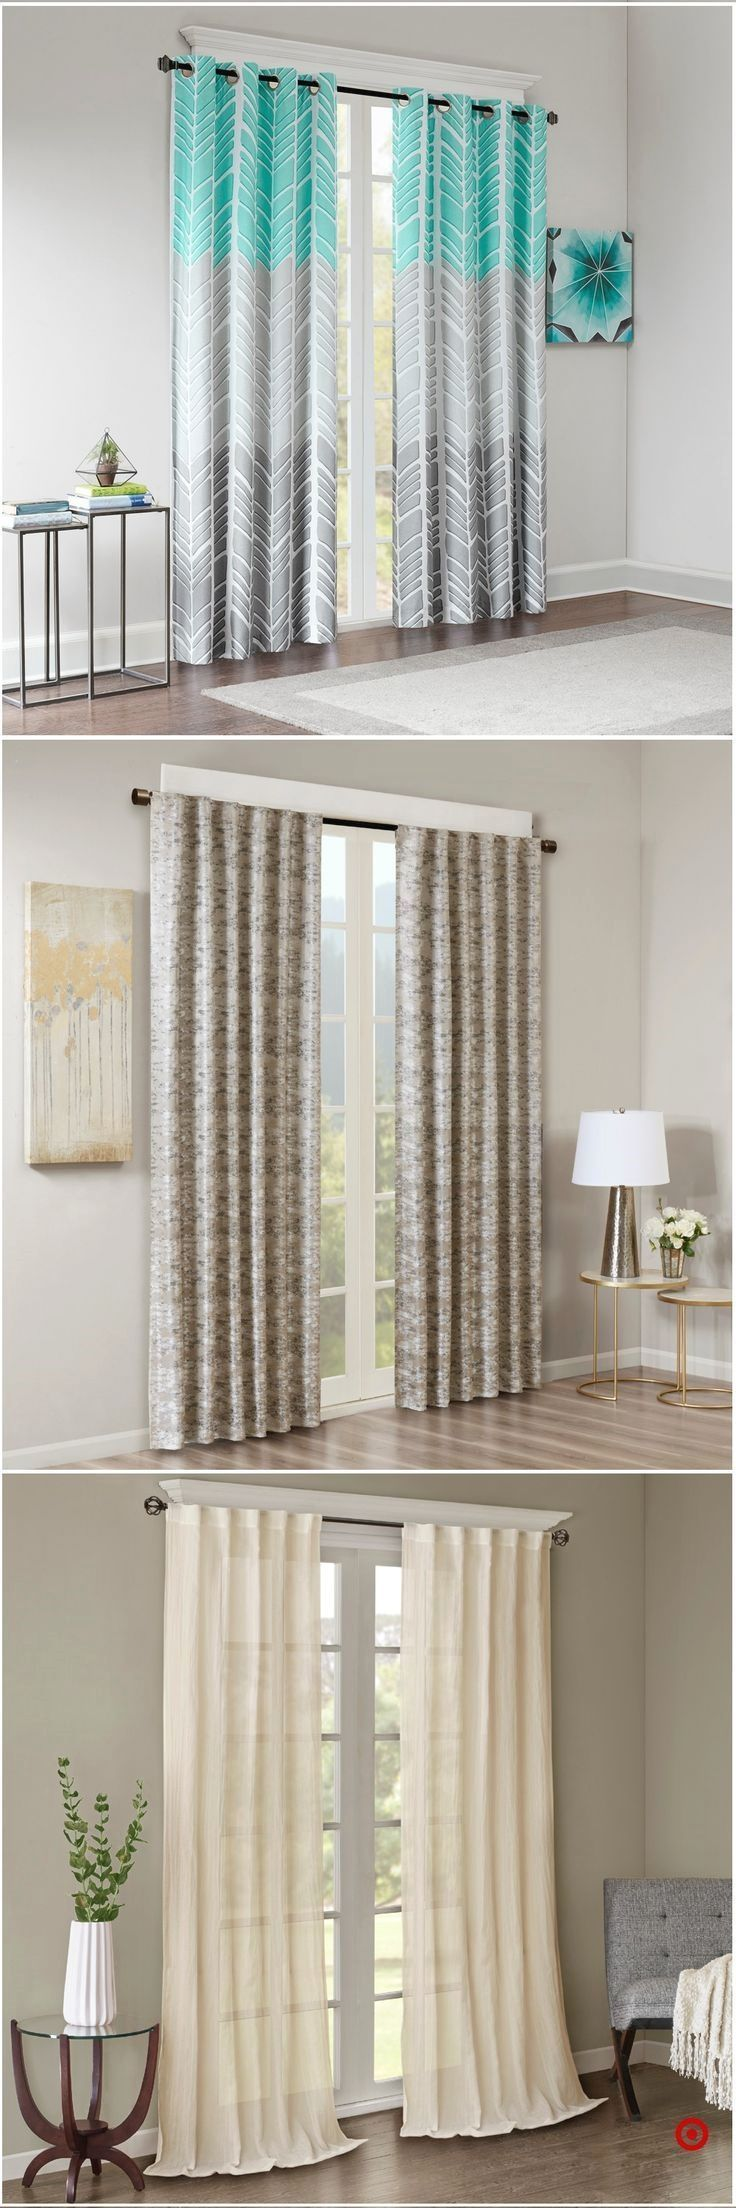 Window covering ideas   window treatment ideas and curtain designs photos  beautiful